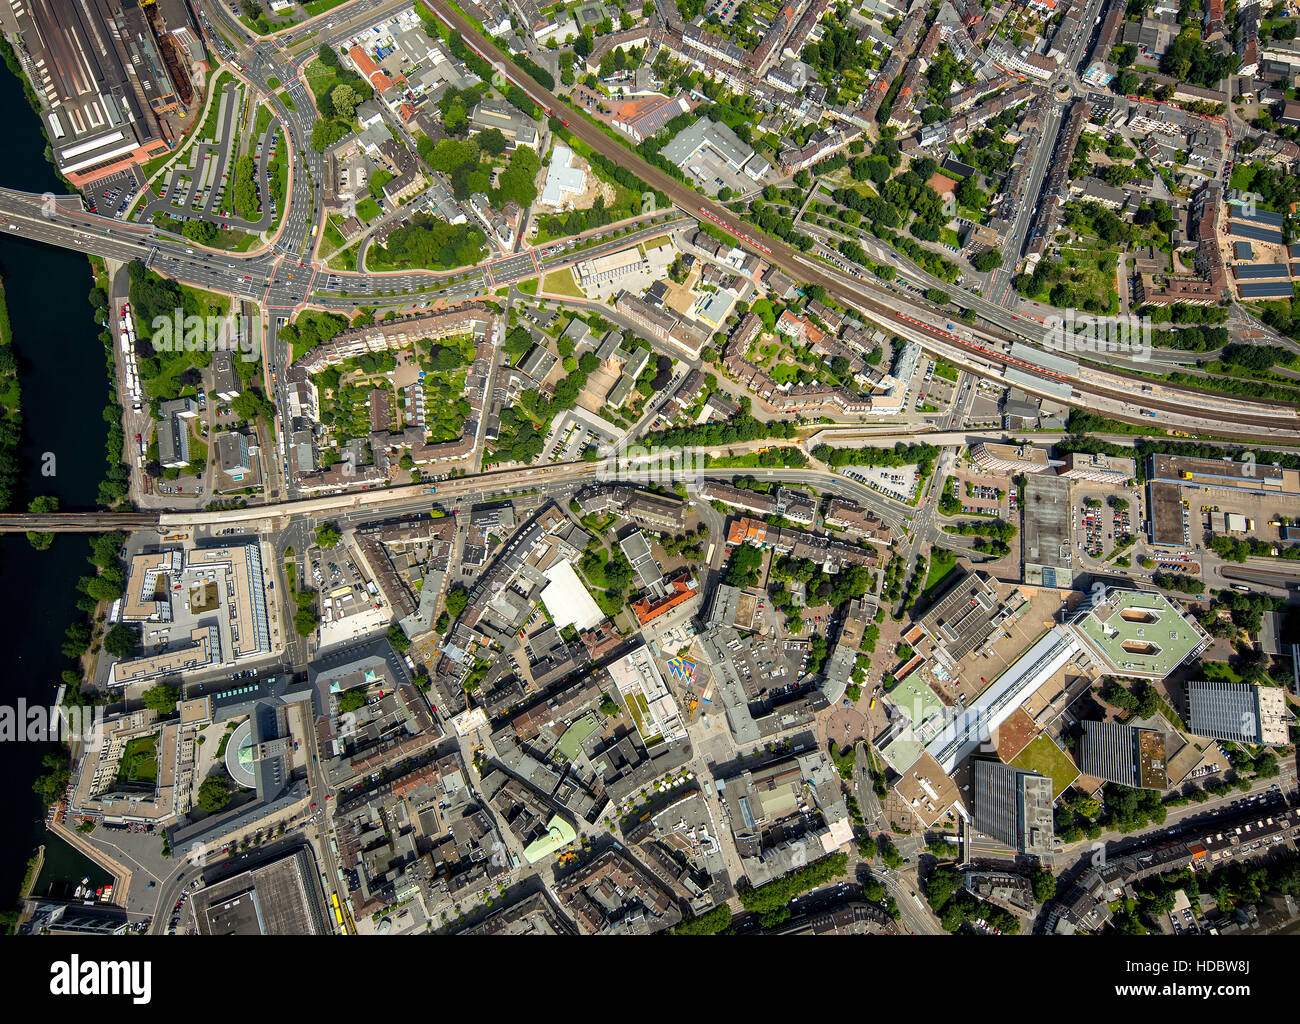 Vertical Aerial Photograph City Centre Mulheim An Der Ruhr District North Rhine Westphalia Germany